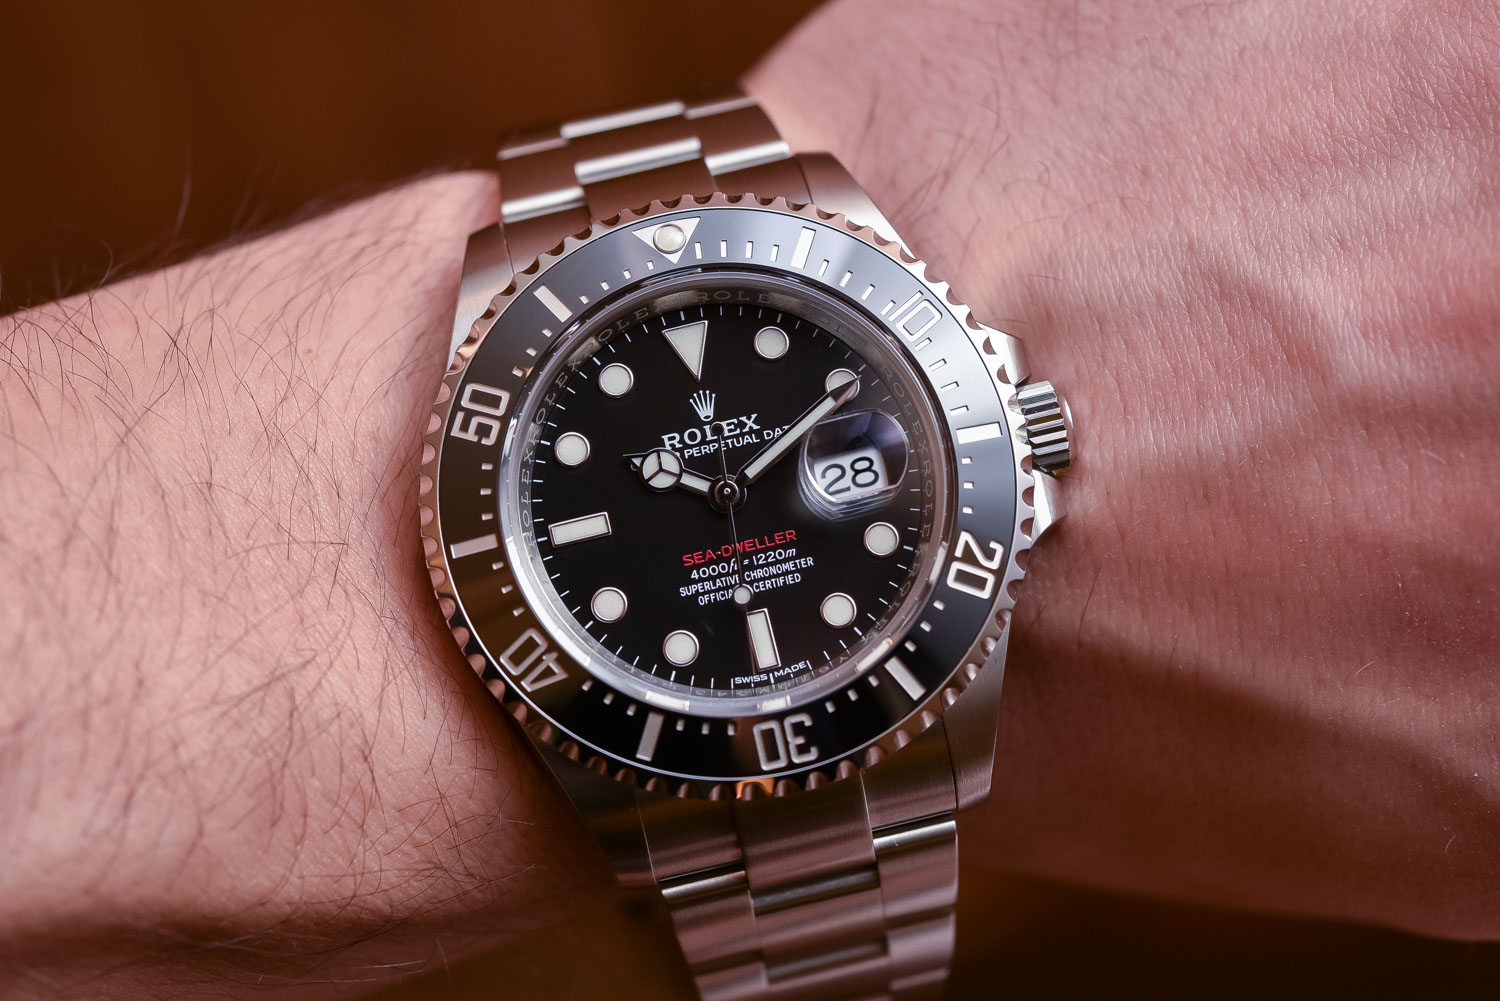 Rolex sea-dweller 126600 43mm red text - Top 10 Baselworld 2017